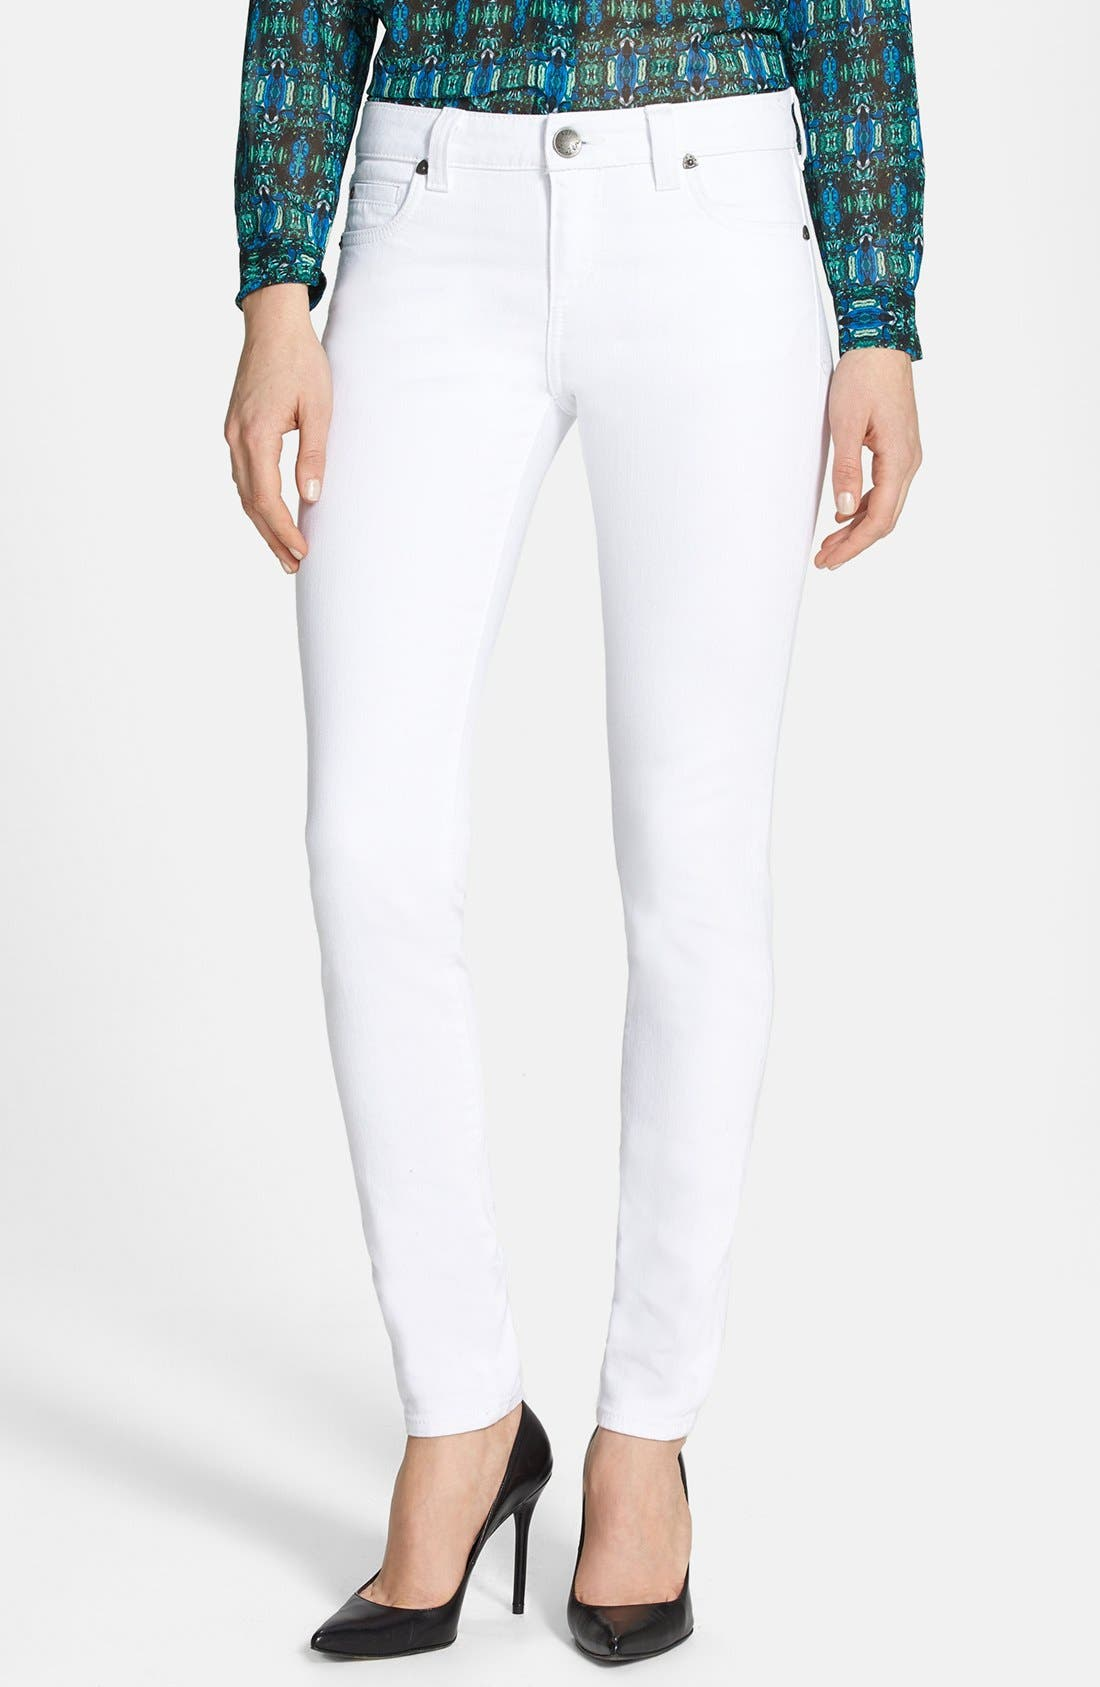 Alternate Image 1 Selected - KUT from the Kloth 'Mia' Skinny Jeans (White)